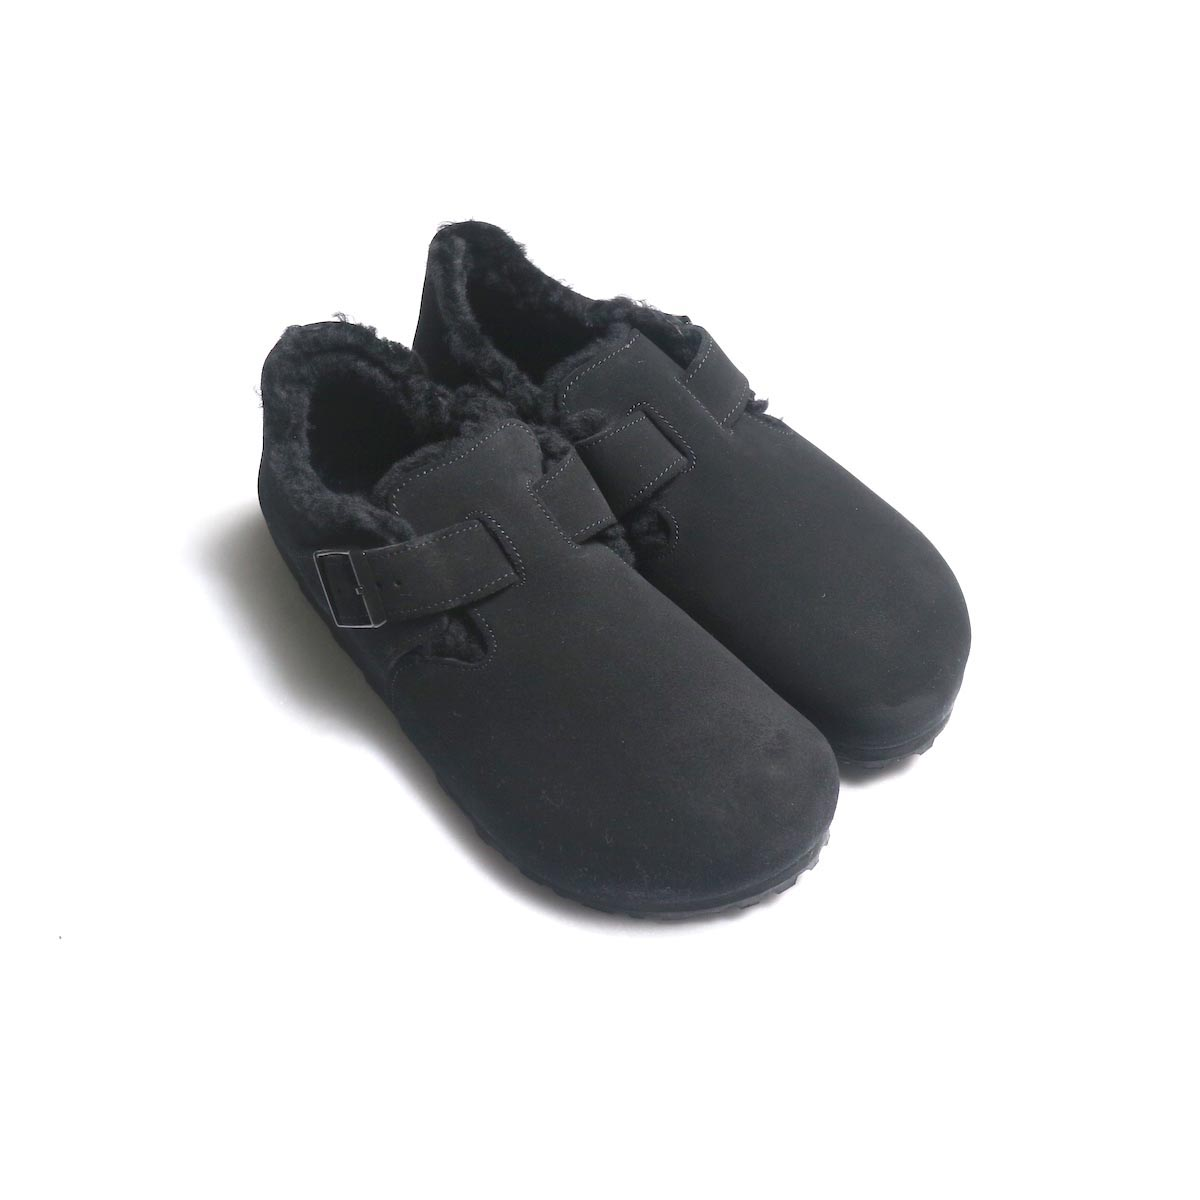 BIRKENSTOCK / London Shearling (Black)